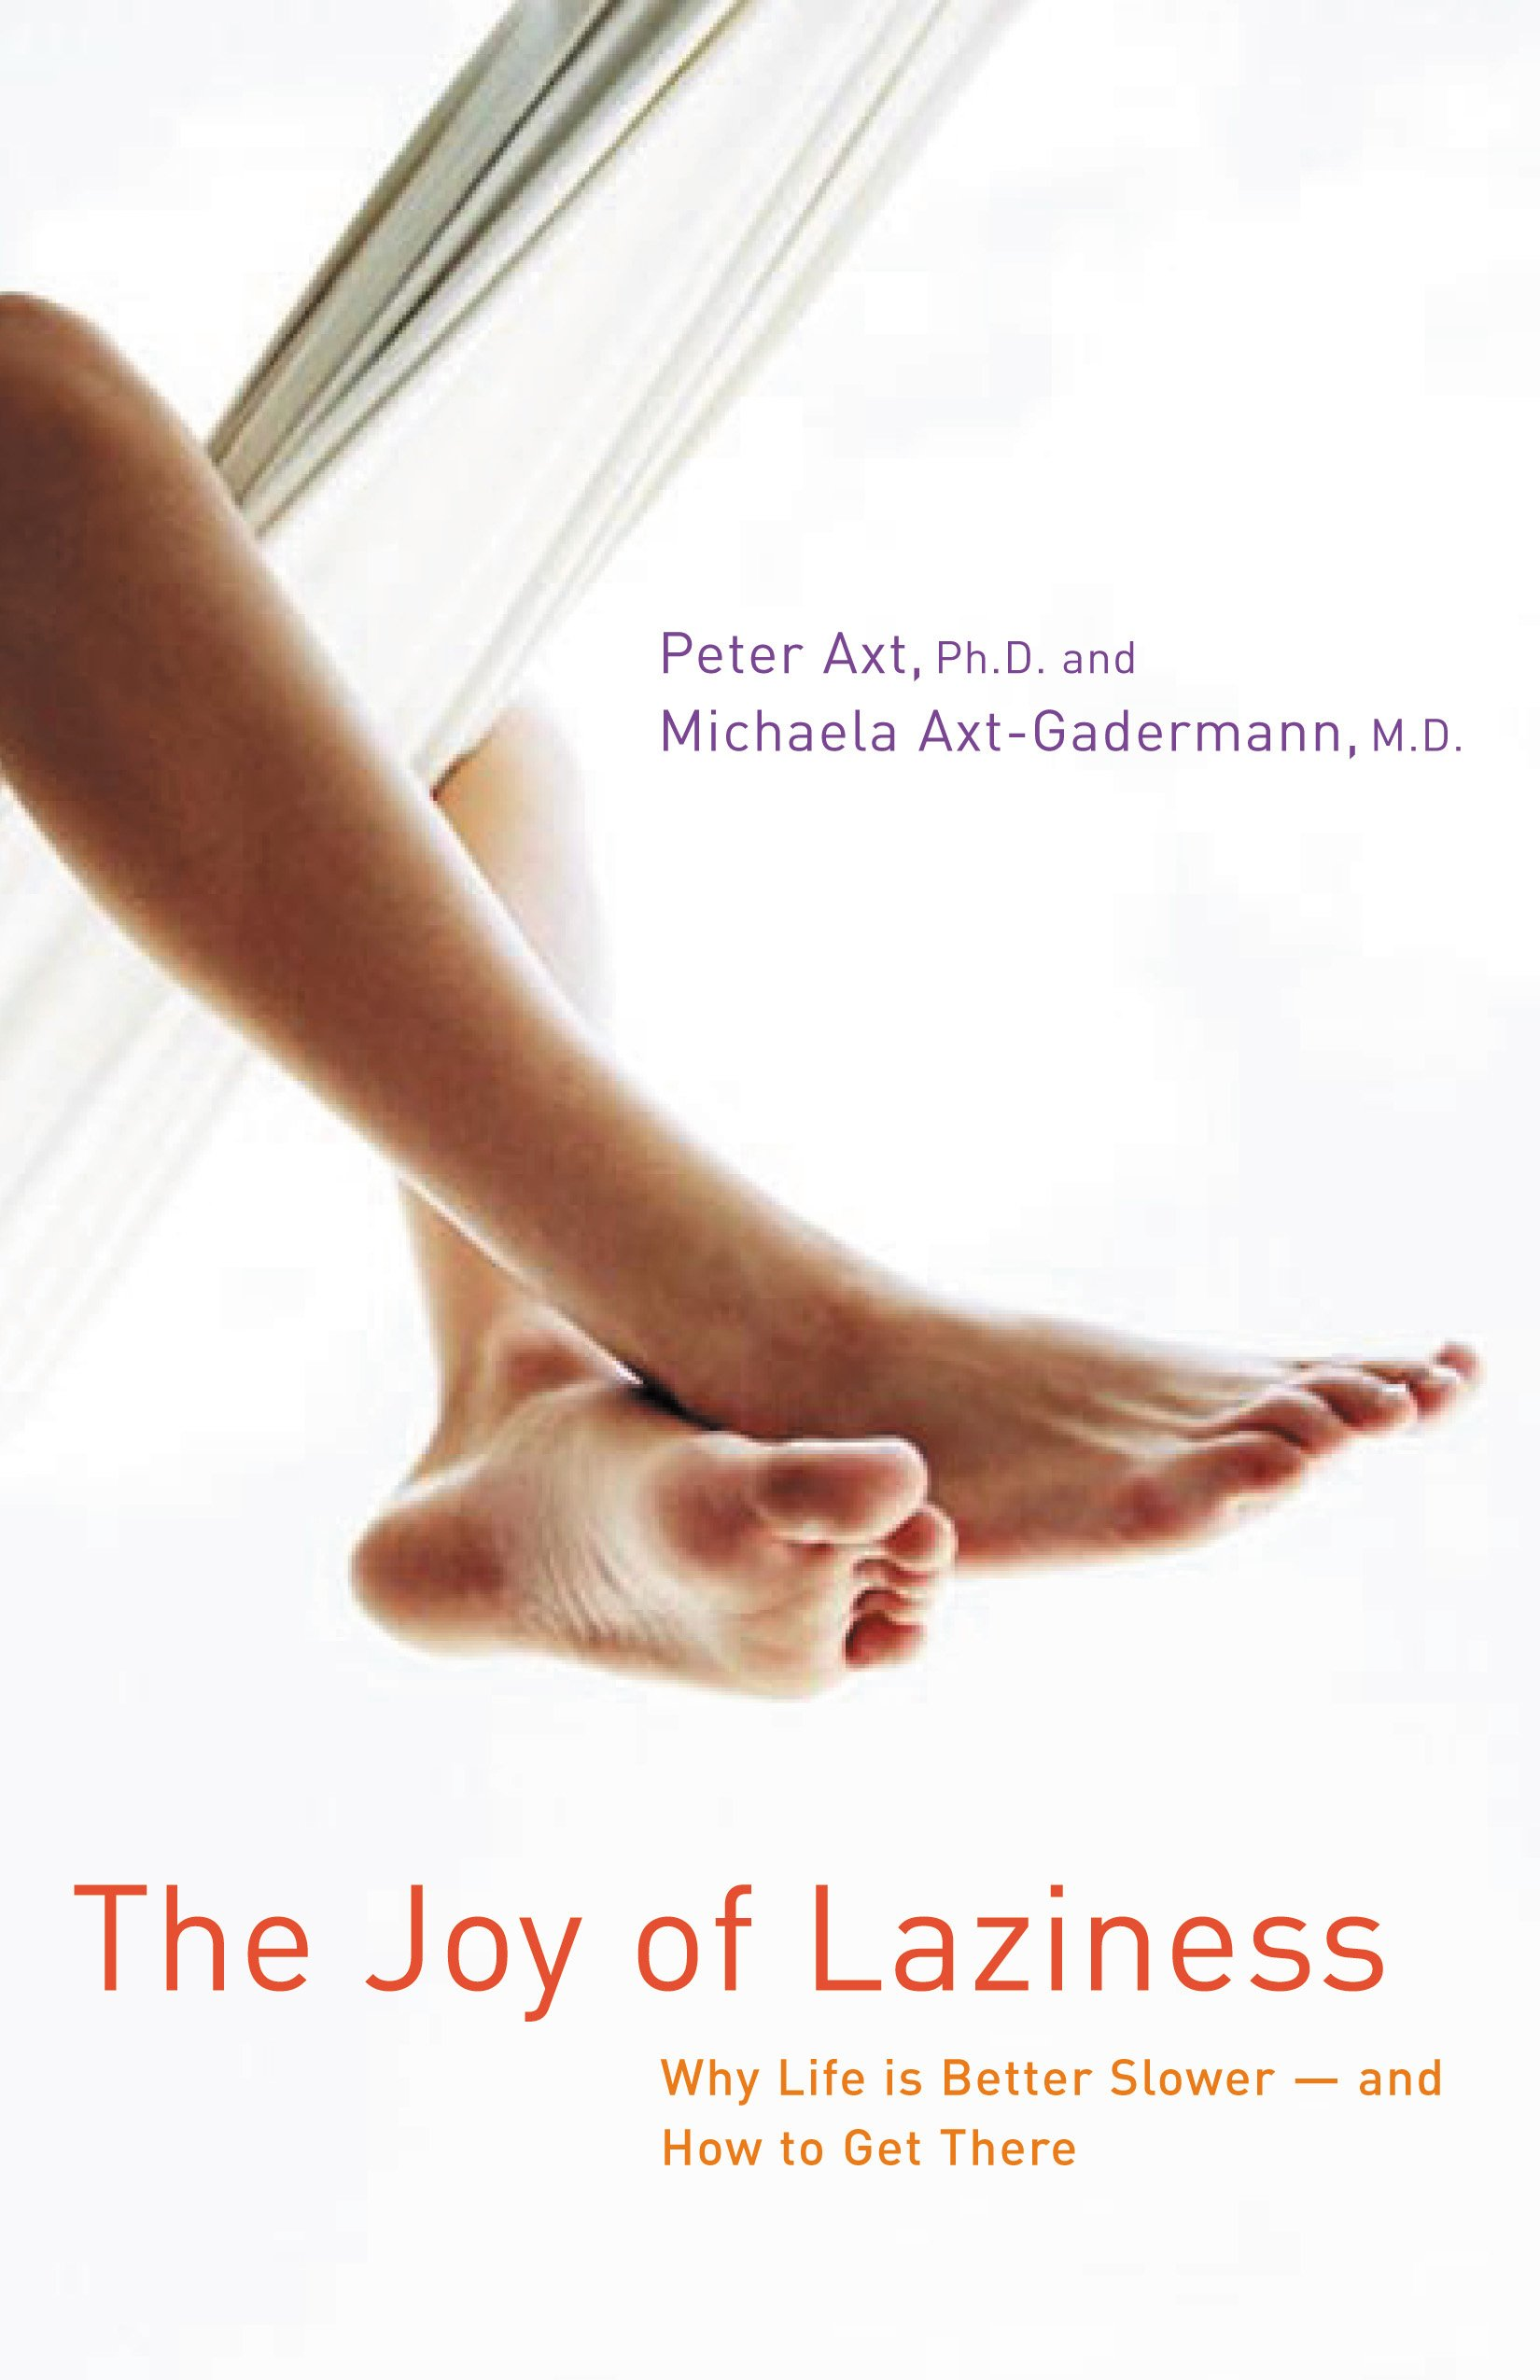 The Joy of Laziness: Why Life Is Better Slower and How to Get There: Amazon.es: Peter Axt, Michaela Axt-Gadermann: Libros en idiomas extranjeros